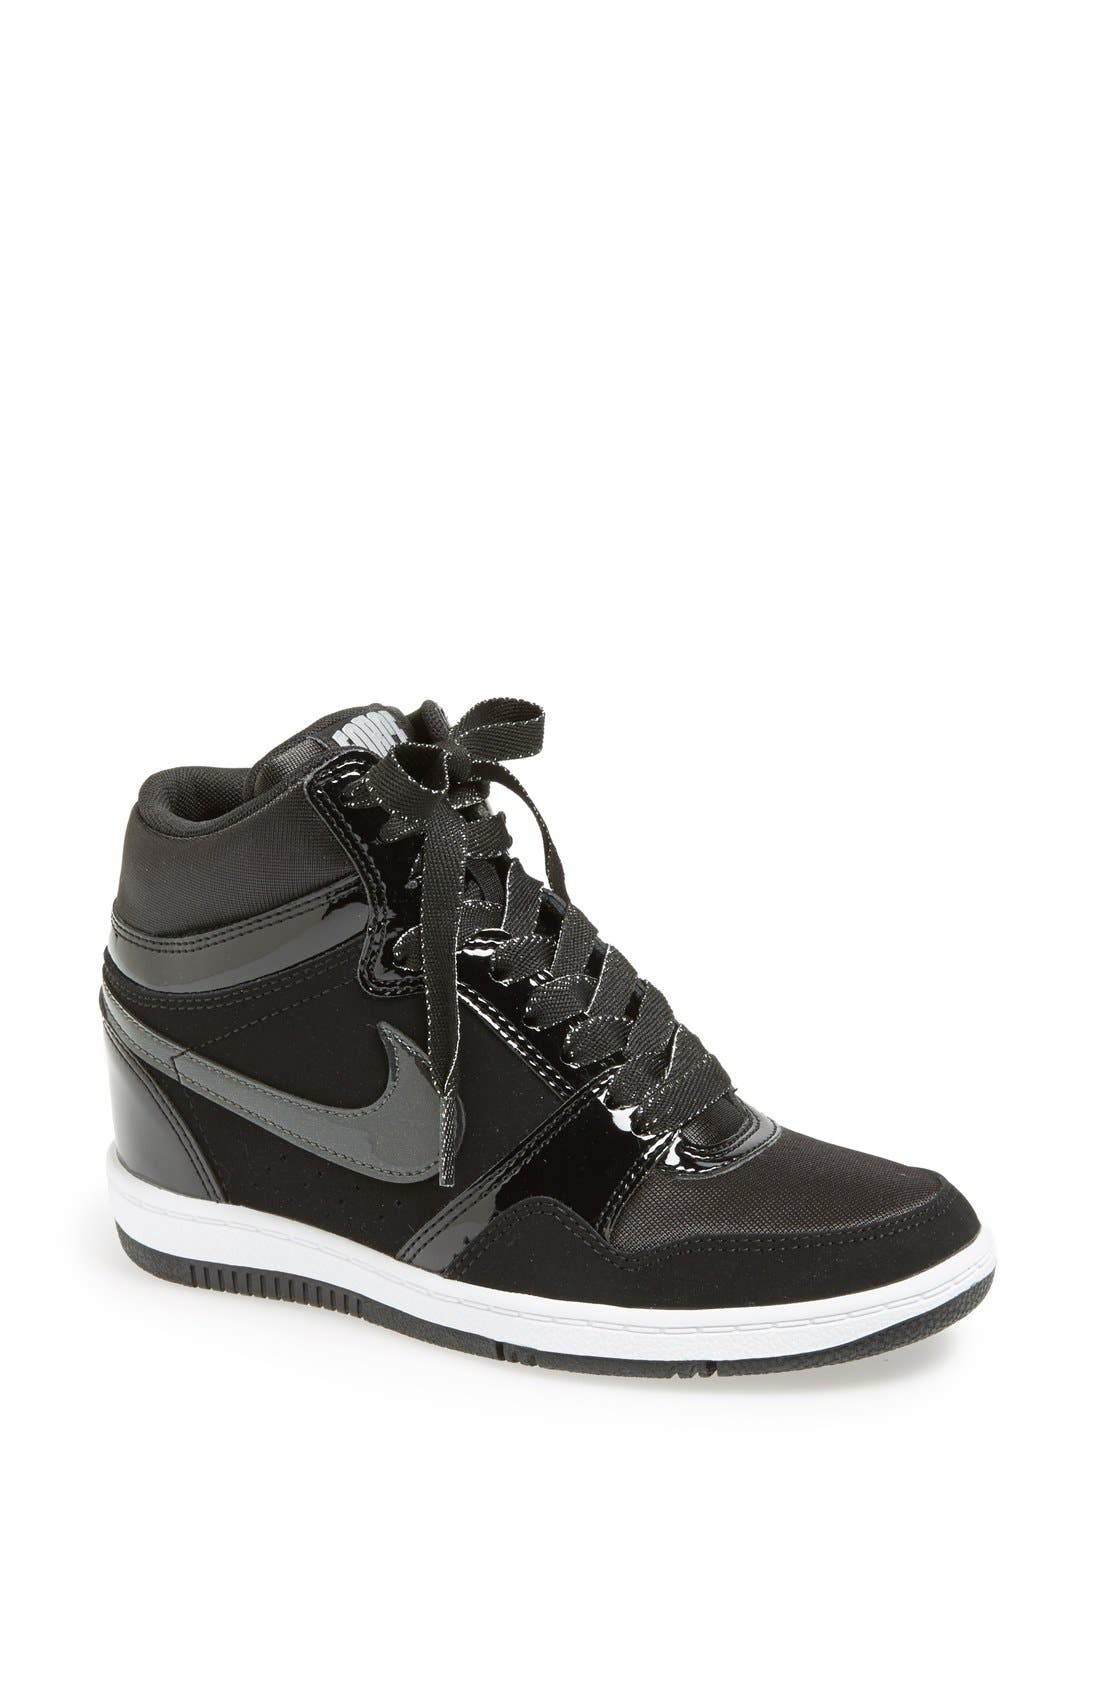 'Force Sky Hi' Wedge Sneaker,                             Main thumbnail 1, color,                             001